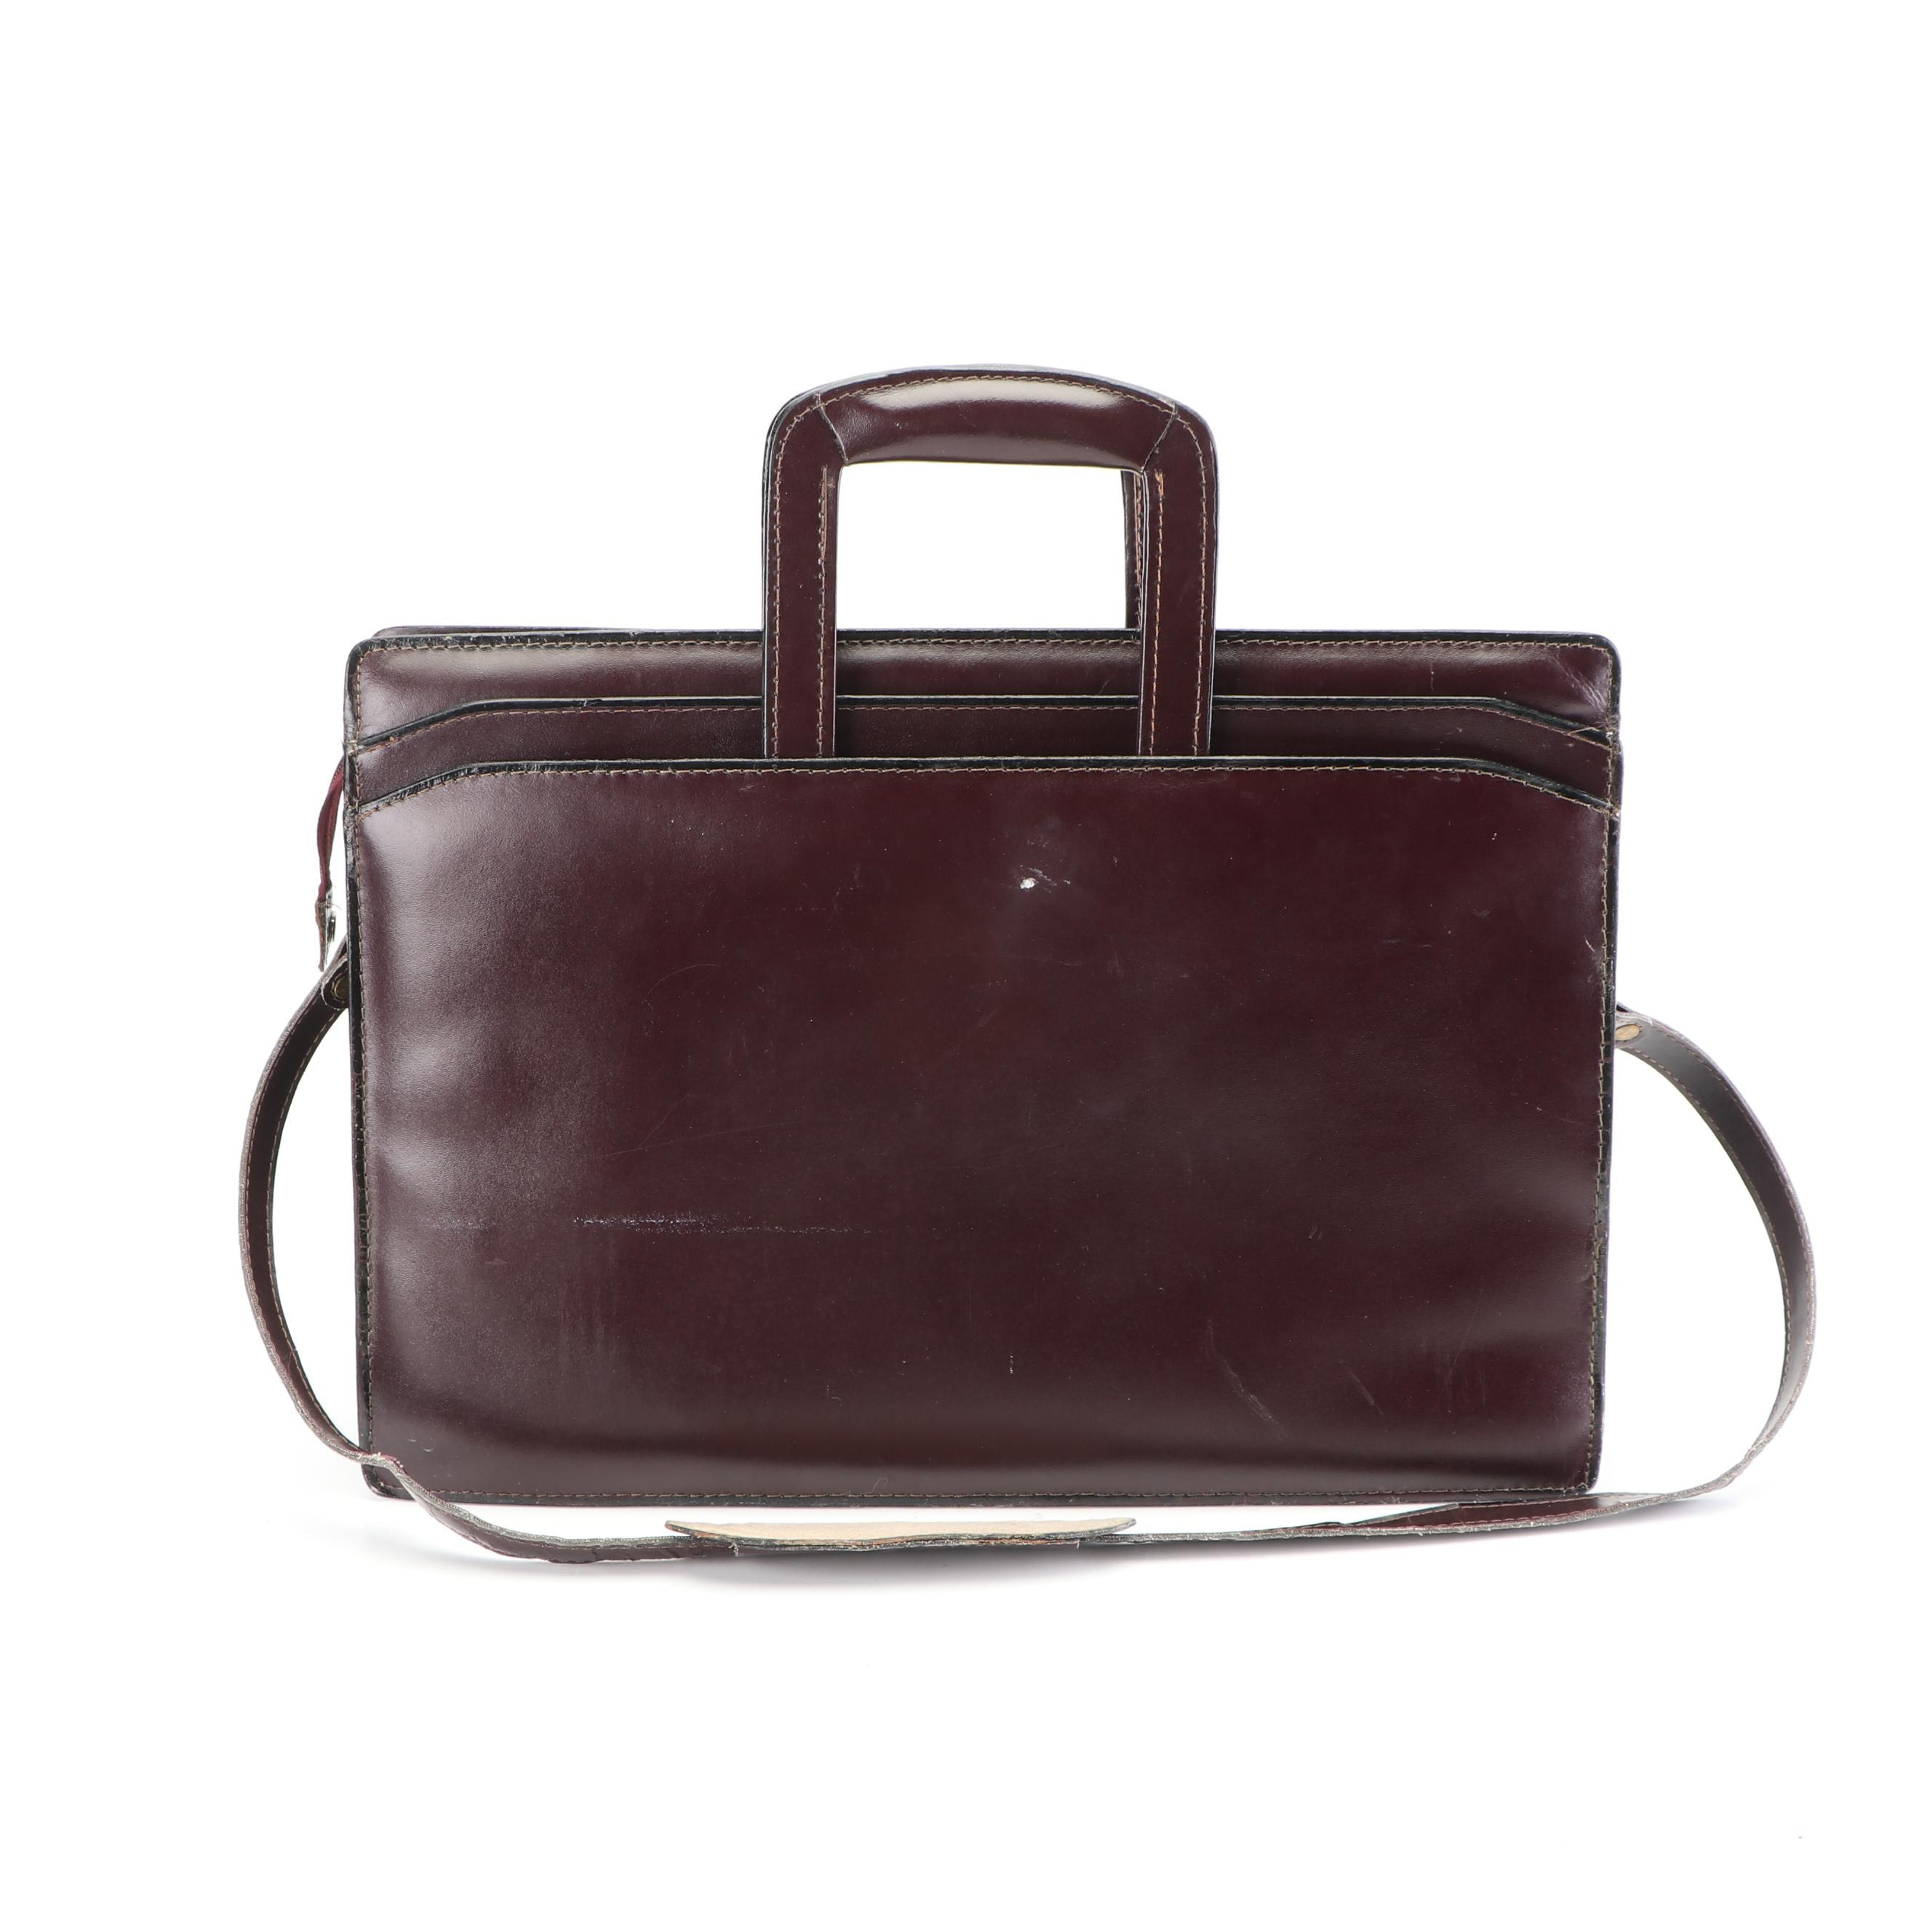 Mallard Oxblood Leather Executive Briefcase with Shoulder Strap